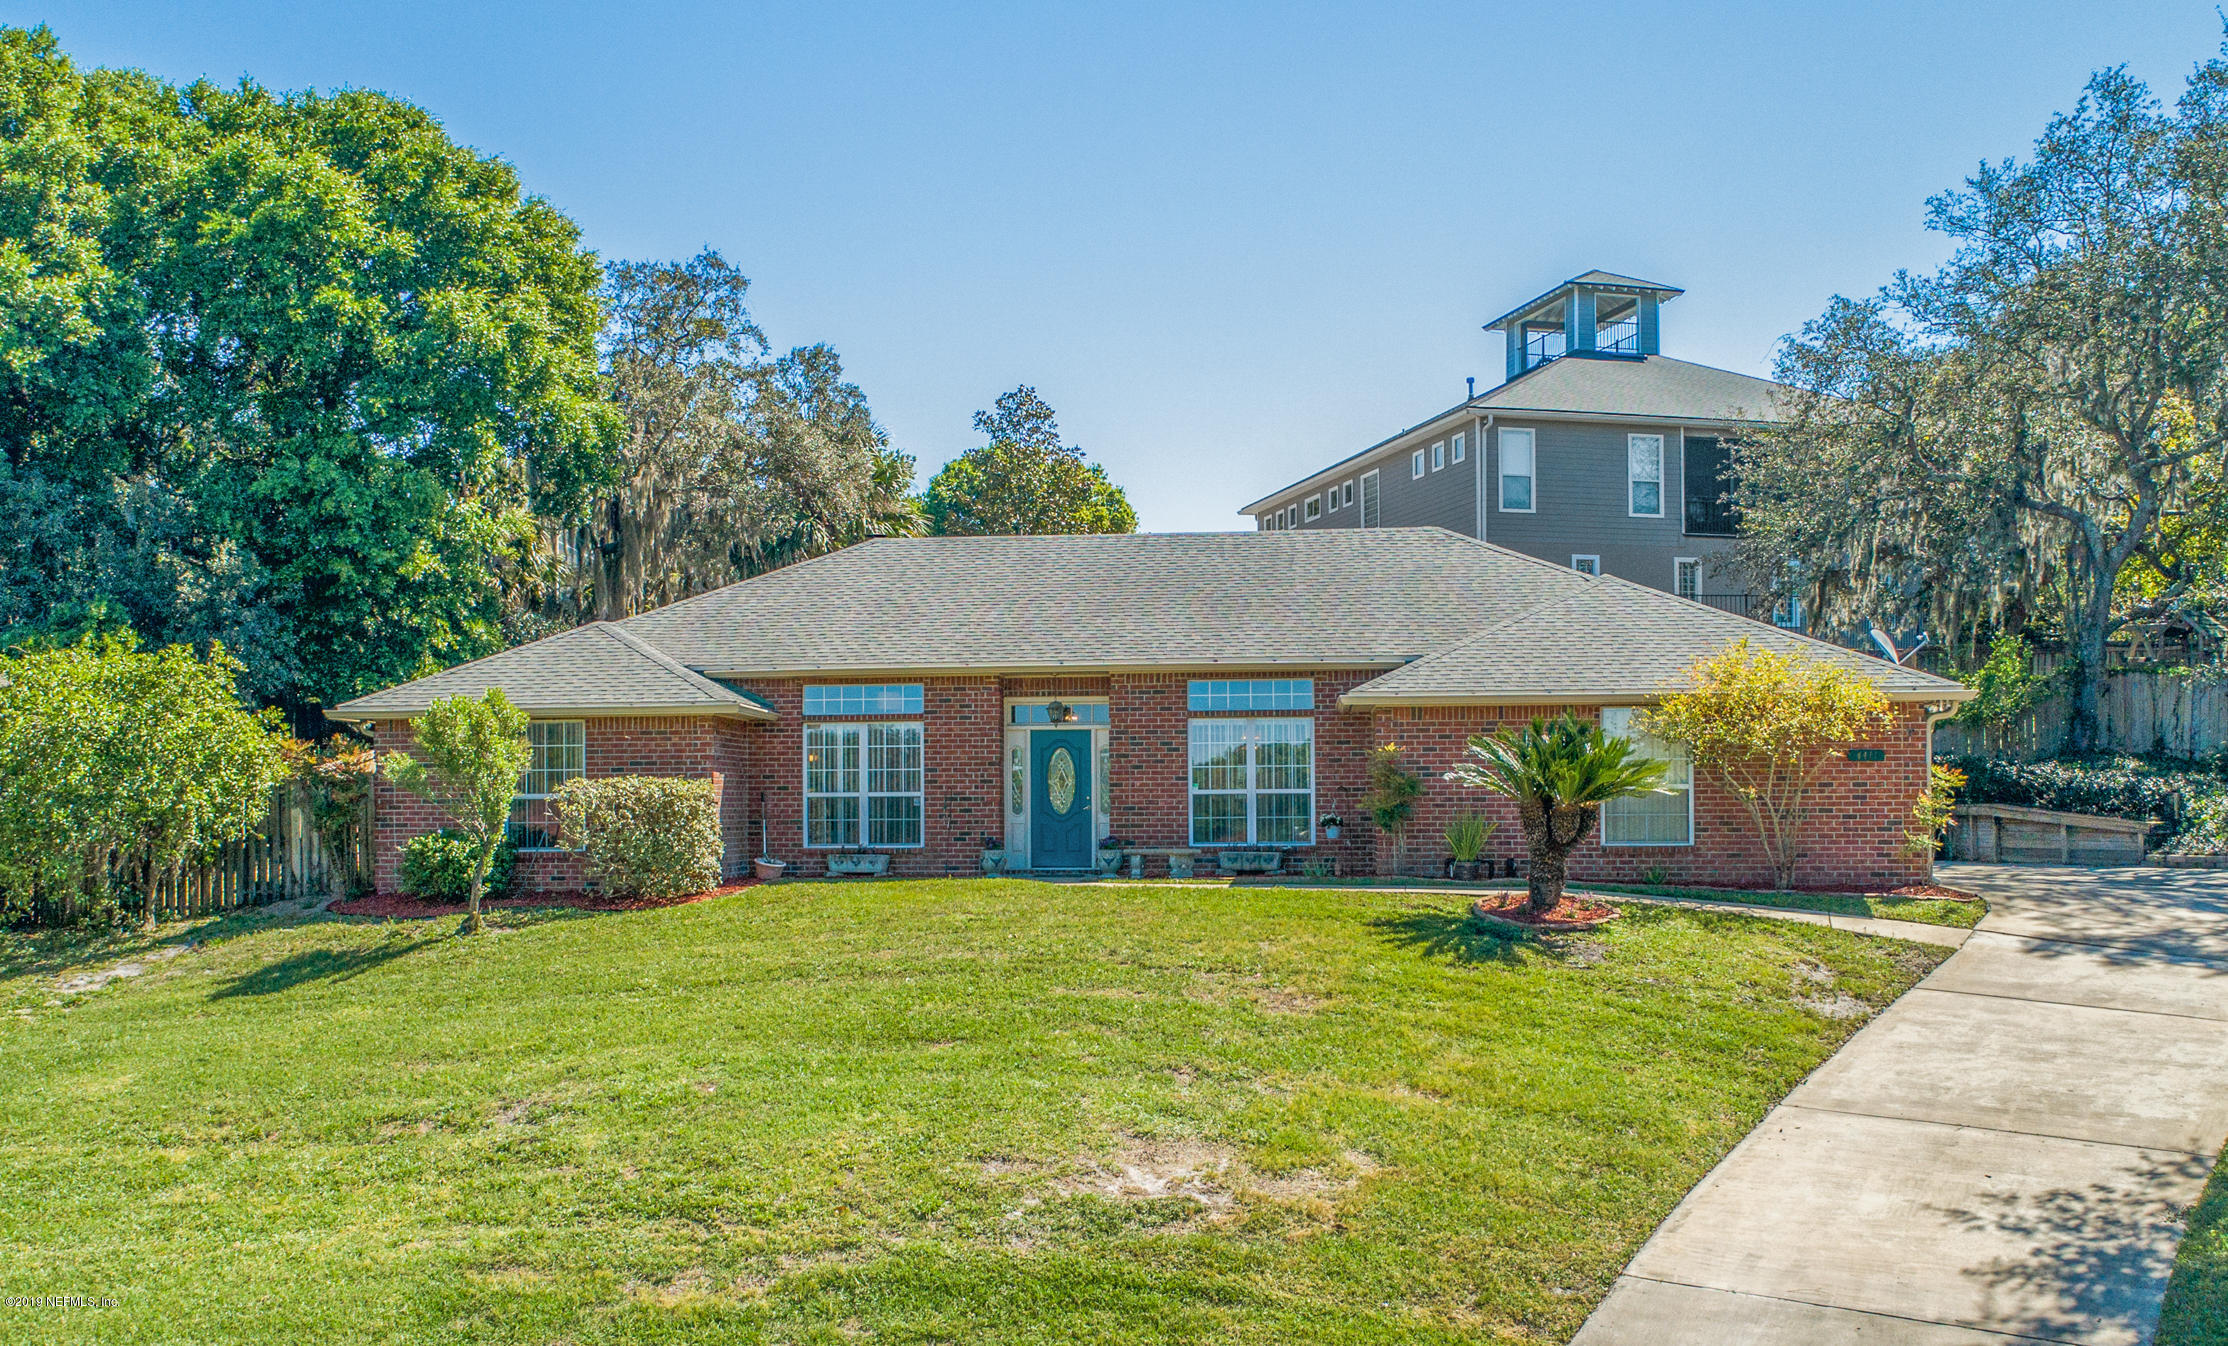 4411 MAJESTIC BLUFF, JACKSONVILLE, FLORIDA 32225, 3 Bedrooms Bedrooms, ,2 BathroomsBathrooms,Residential - single family,For sale,MAJESTIC BLUFF,986124